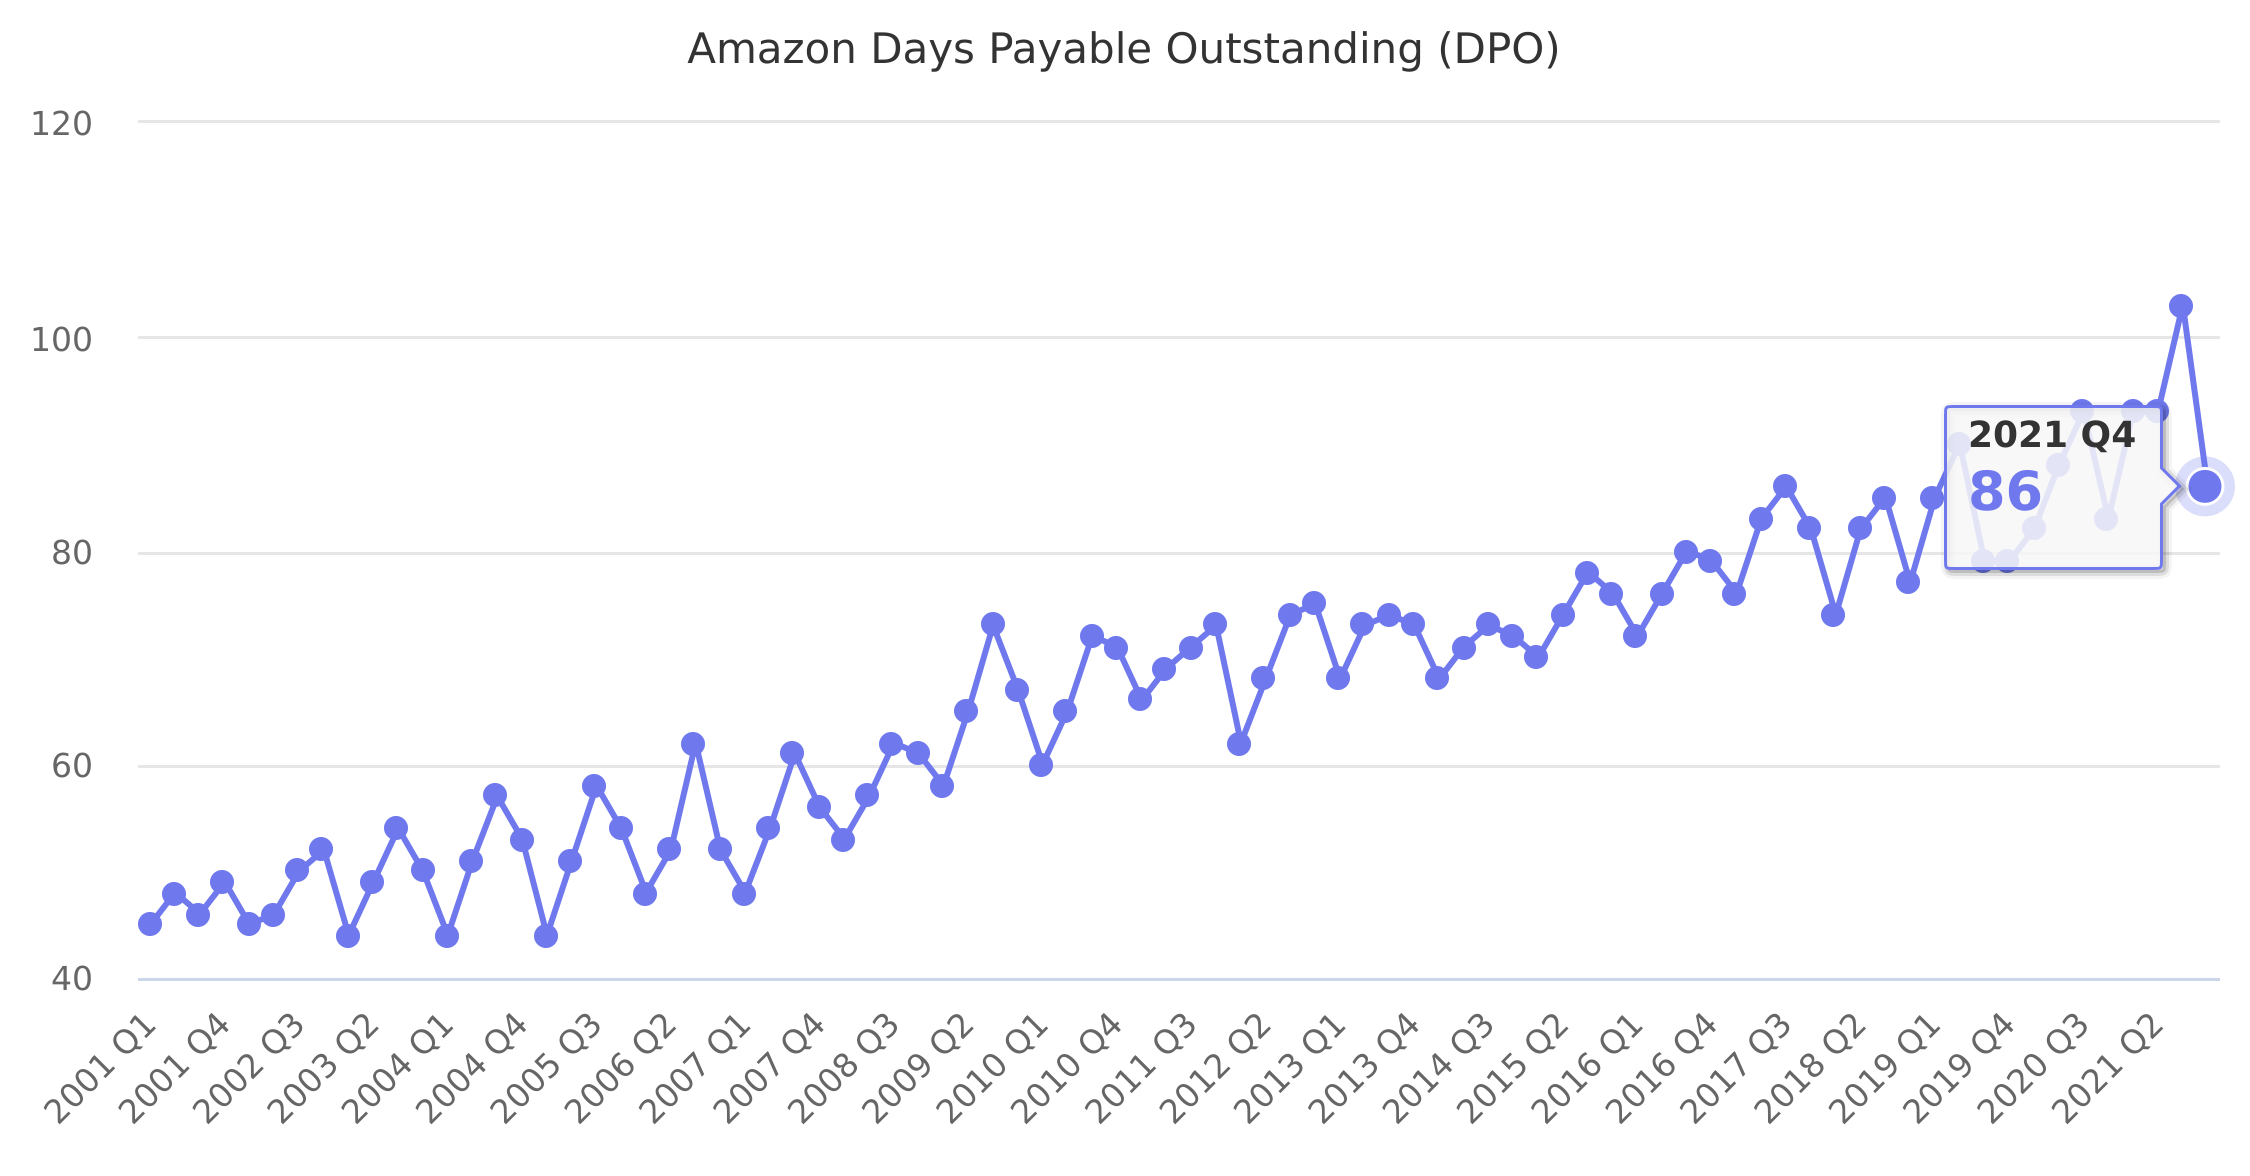 Amazon Days Payable Outstanding (DPO) 2001-2019